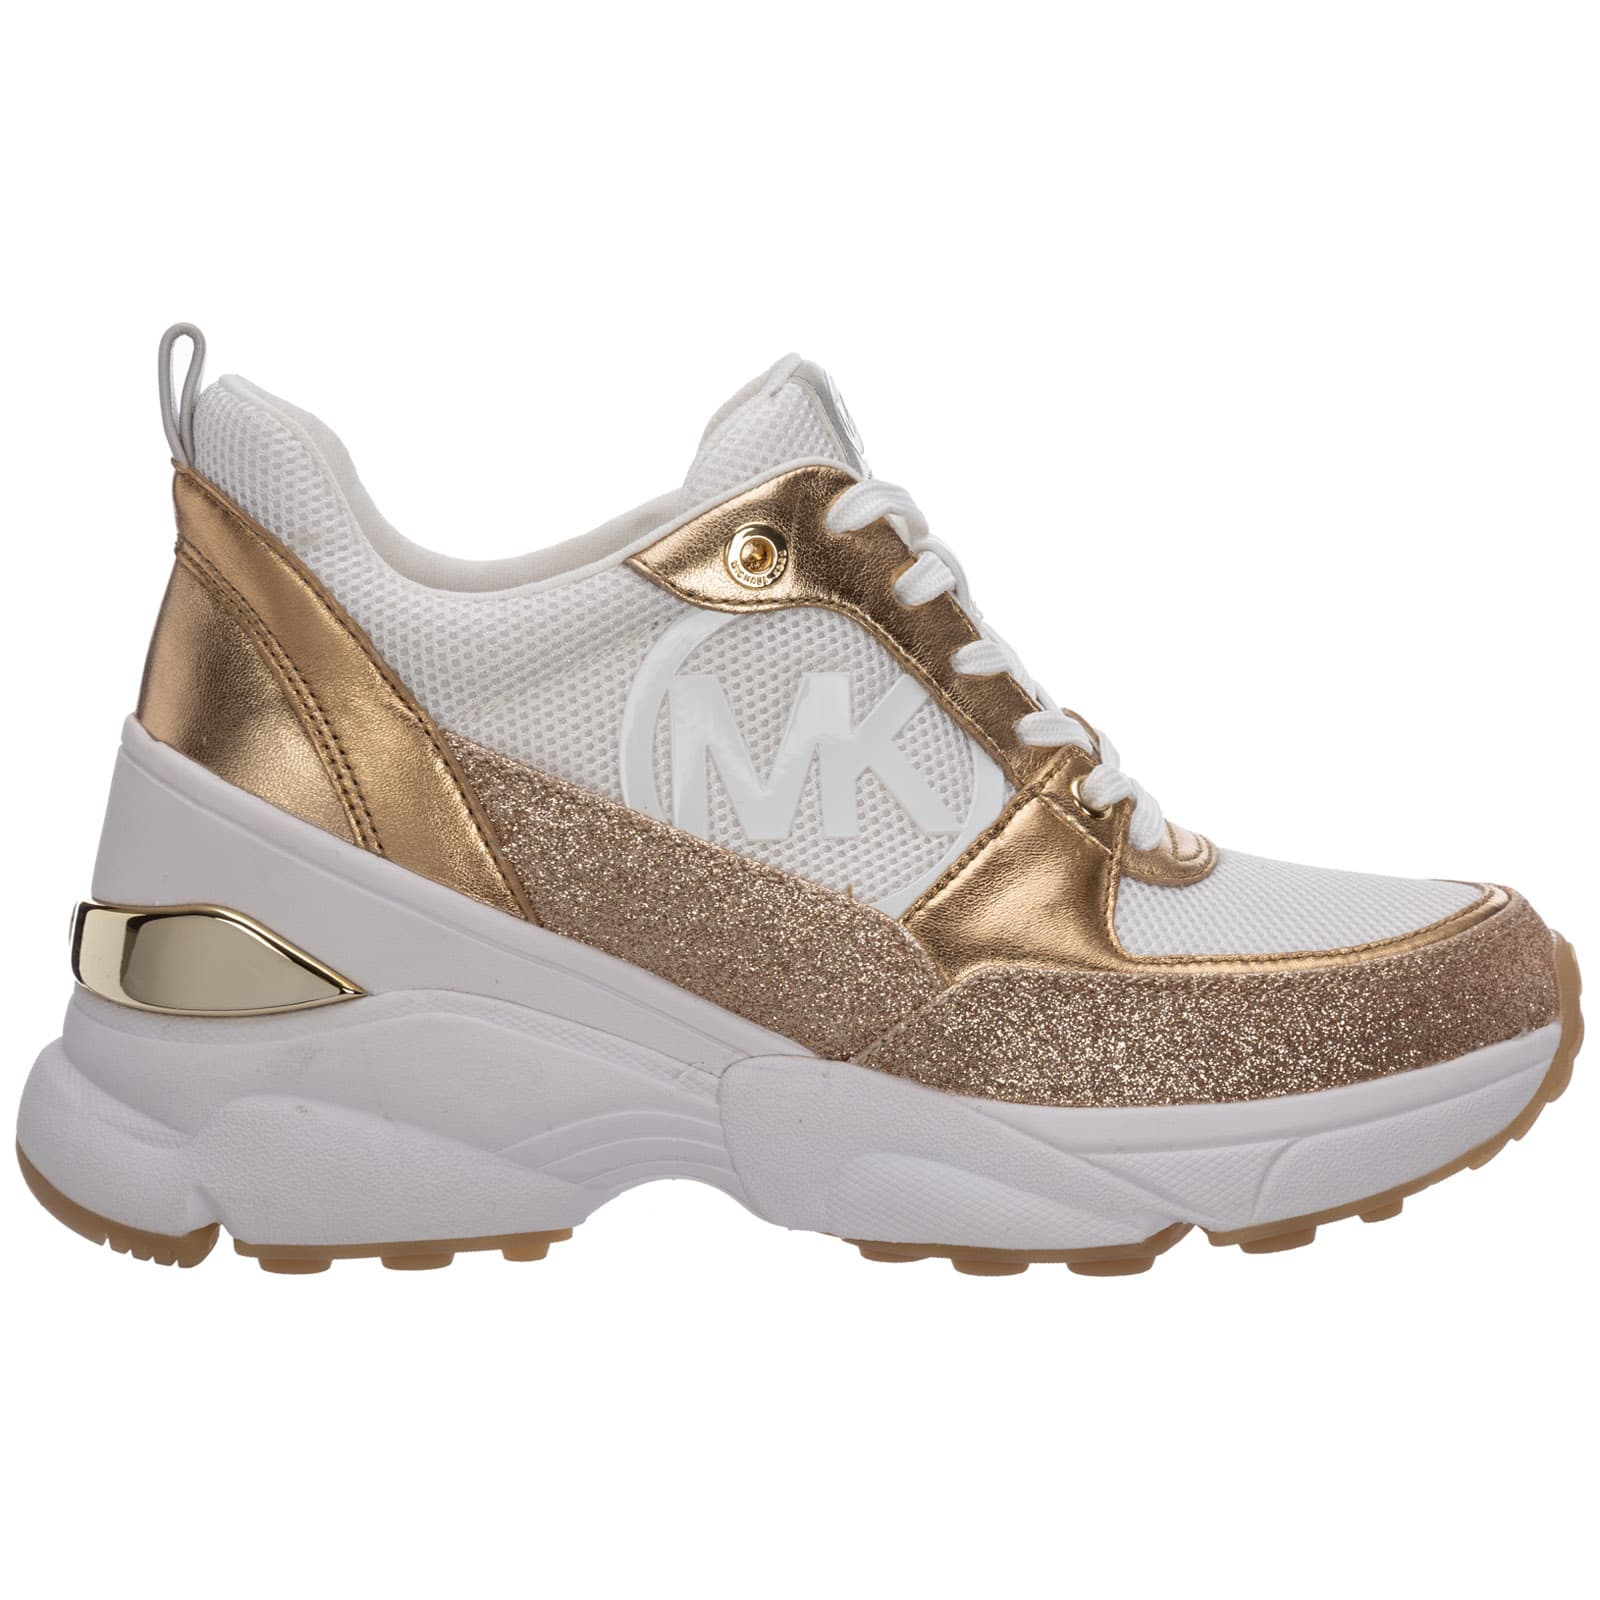 Buy Michael Kors Bo Sneakers online, shop Michael Kors shoes with free shipping